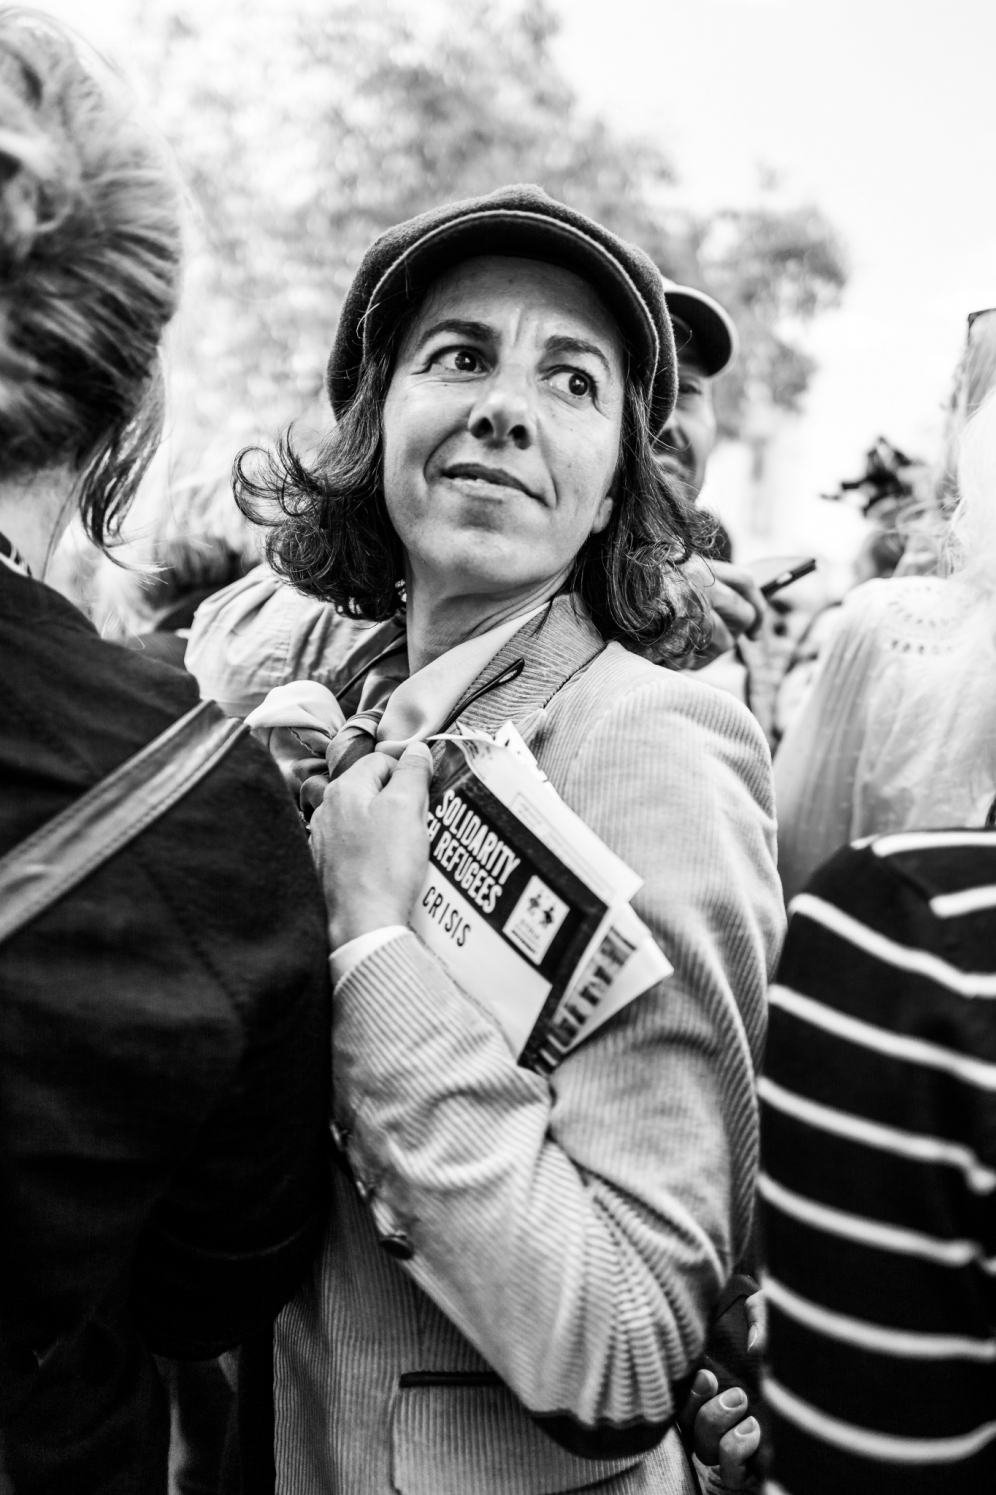 the-solidarity-with-refugees-march-12092015_21350195106_o